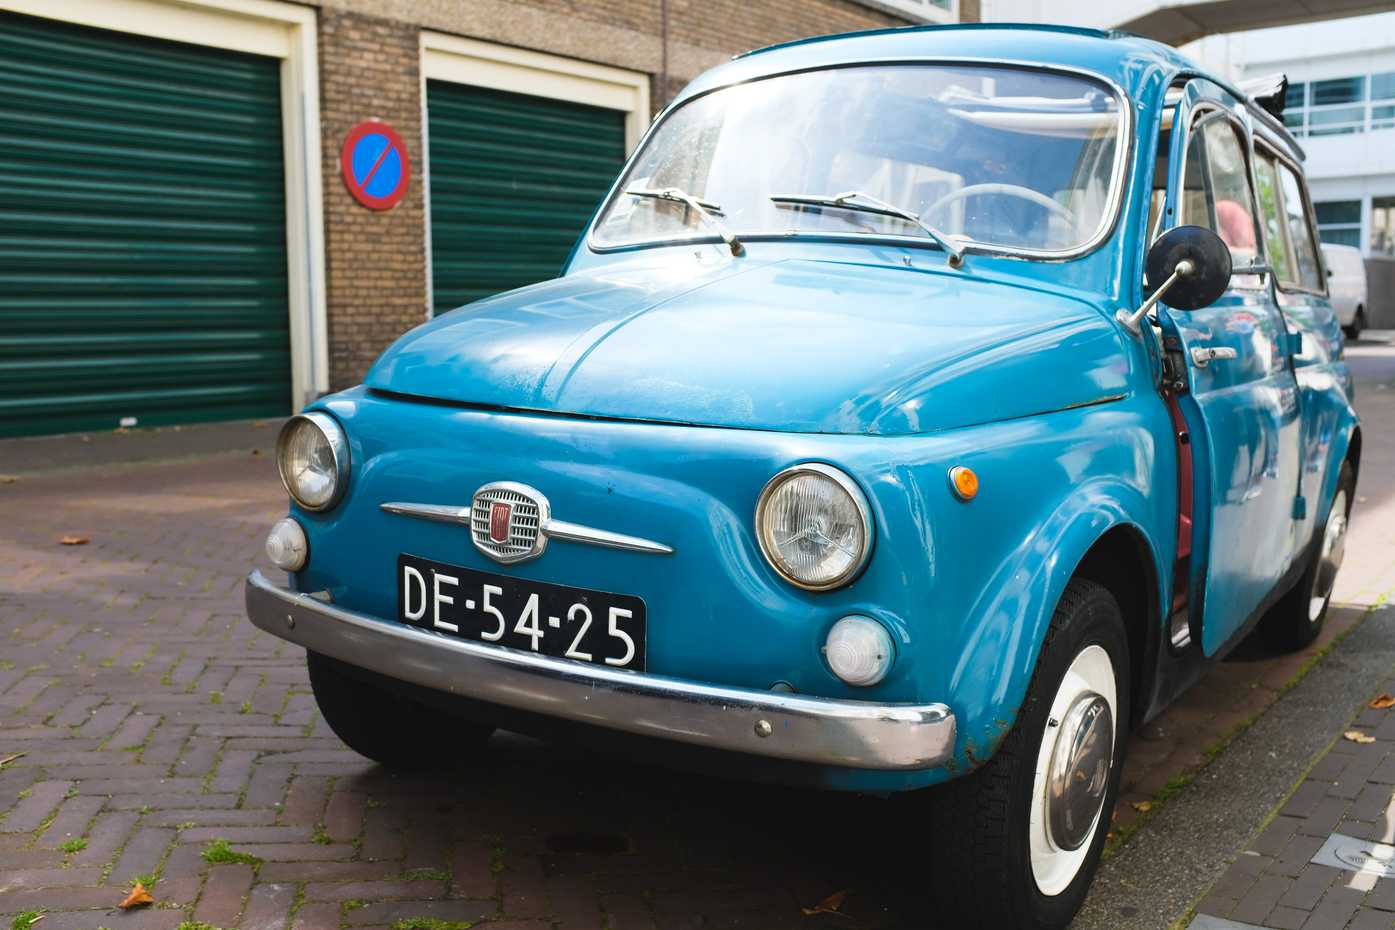 And old blue Fiat car